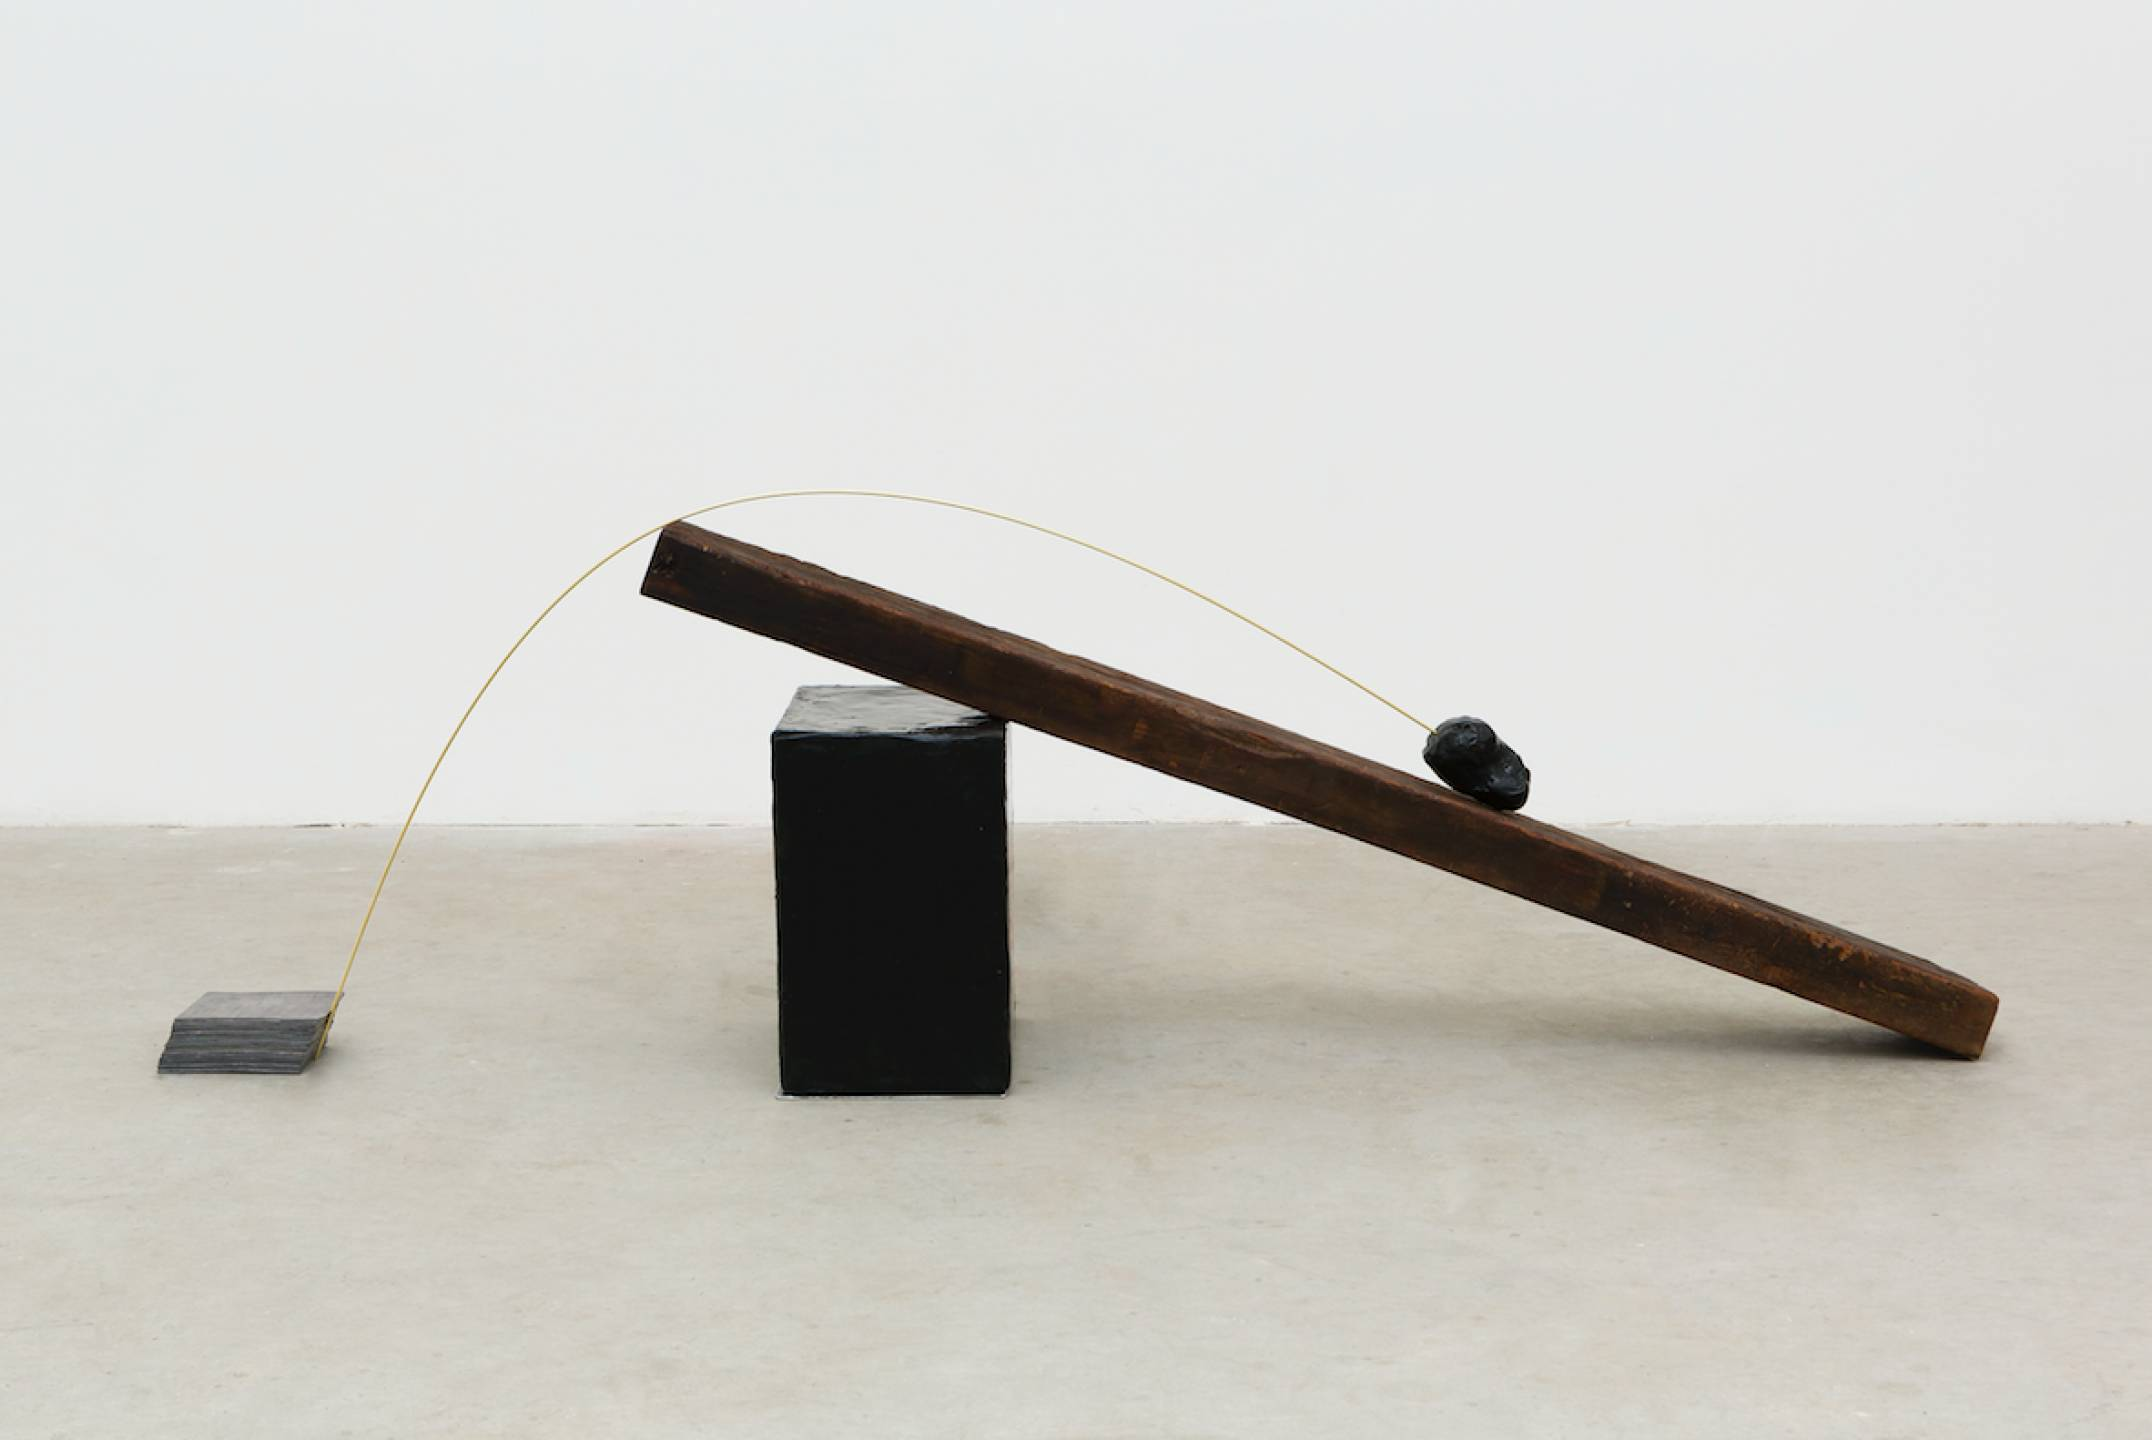 Paloma Bosquê, <em>Trampolim,</em> 2017, wax block and resin, lead sheet, wood, brass rod and wax stone and resin, 53 × 166 × 32,5 cm - Mendes Wood DM